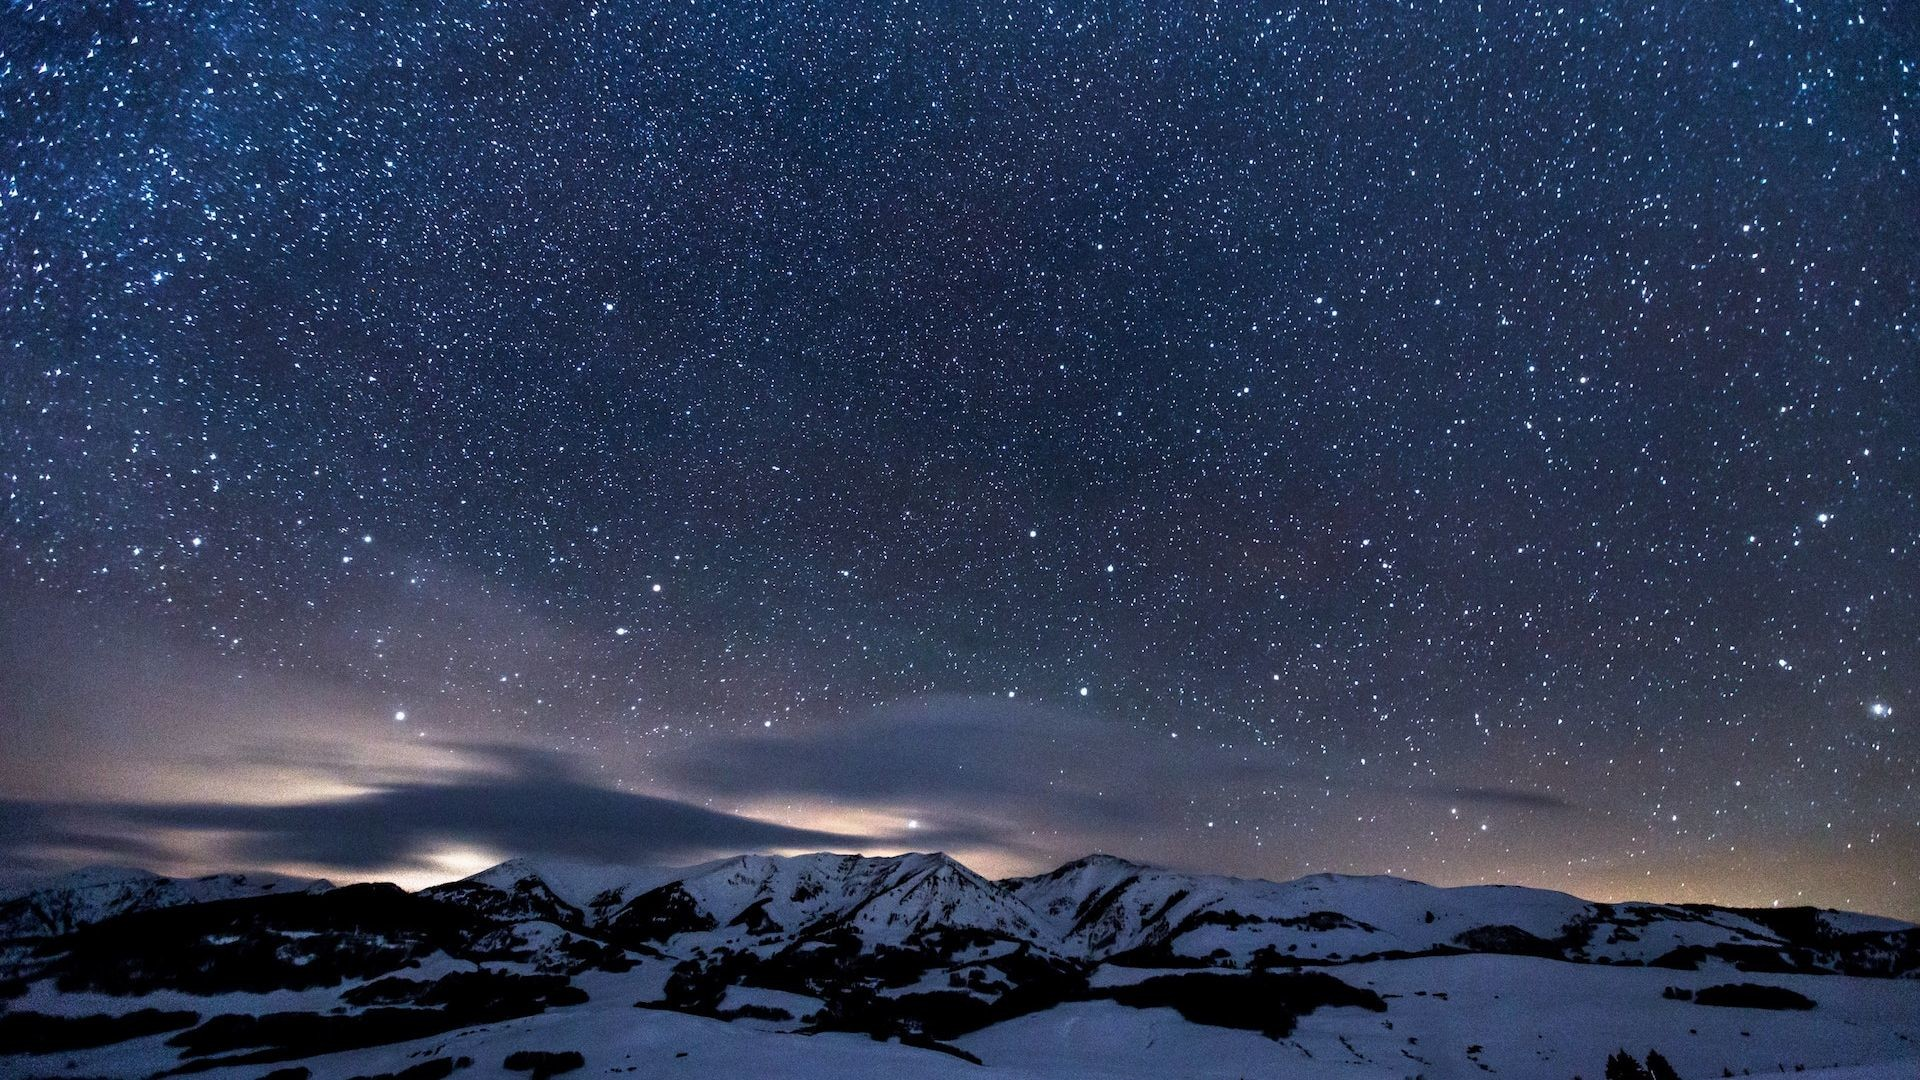 Res: 1920x1080, Star Sprinkled Snowy Mountains